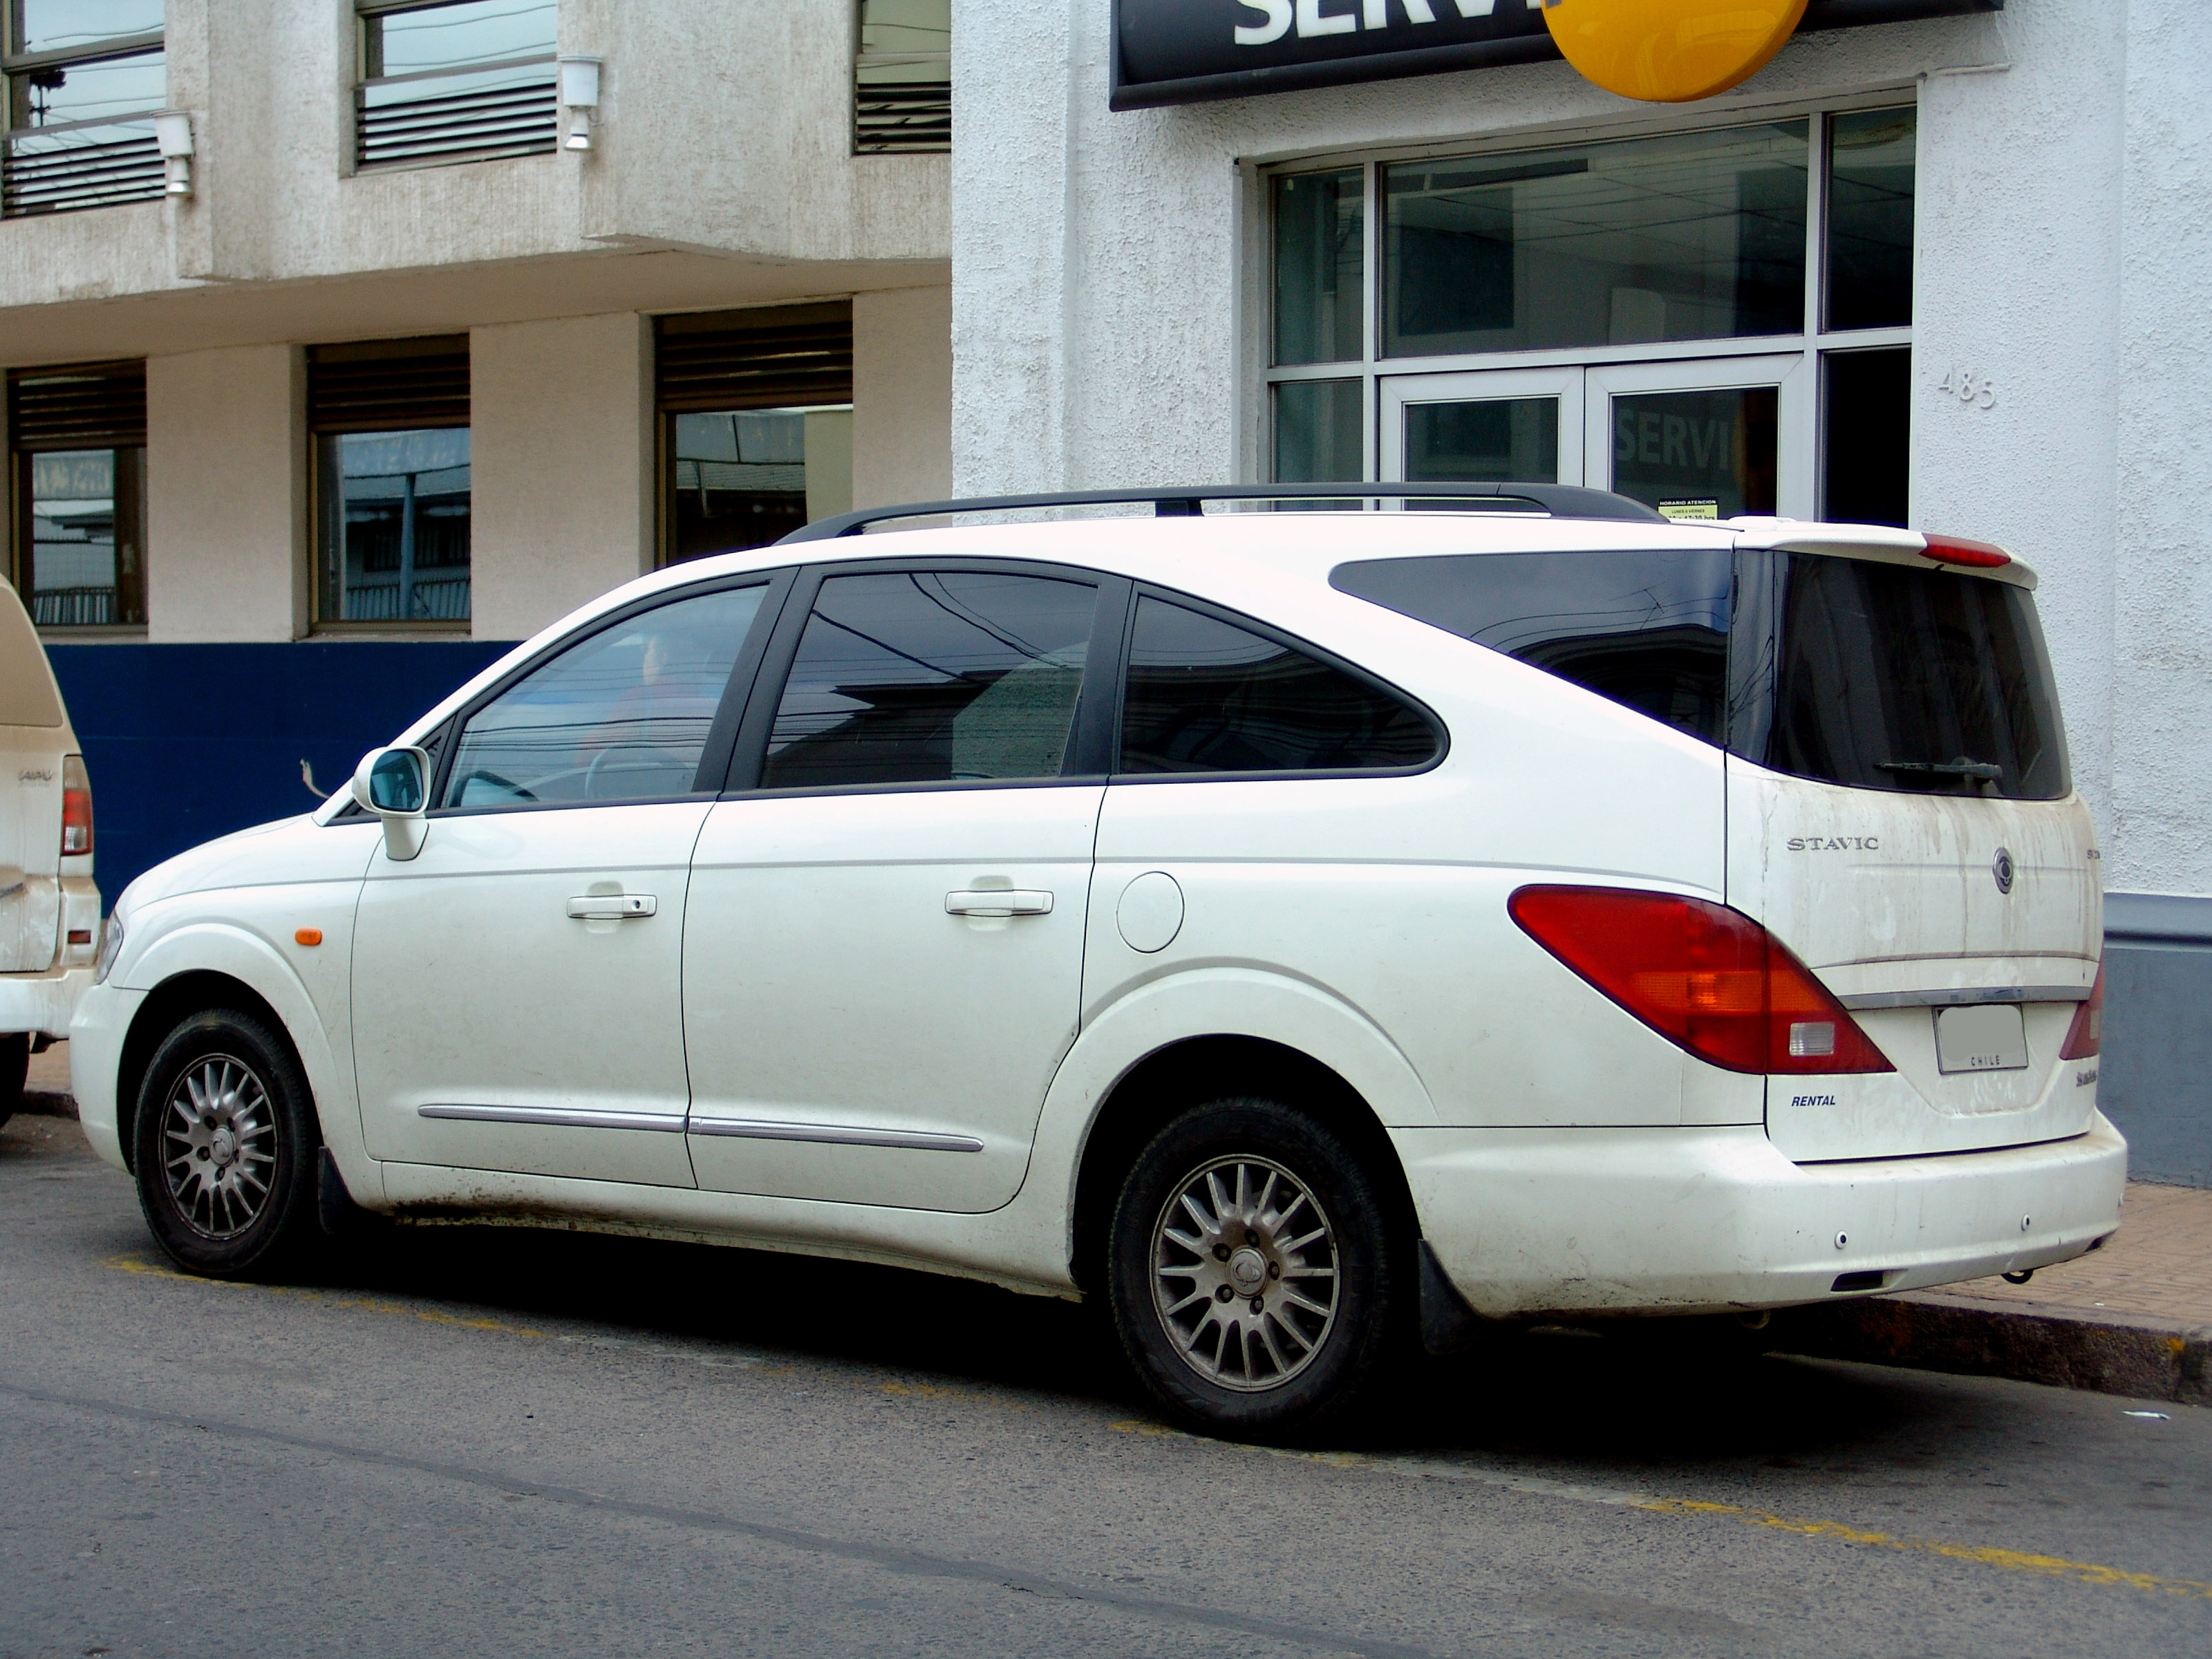 2010 Ssangyong Stavic #11